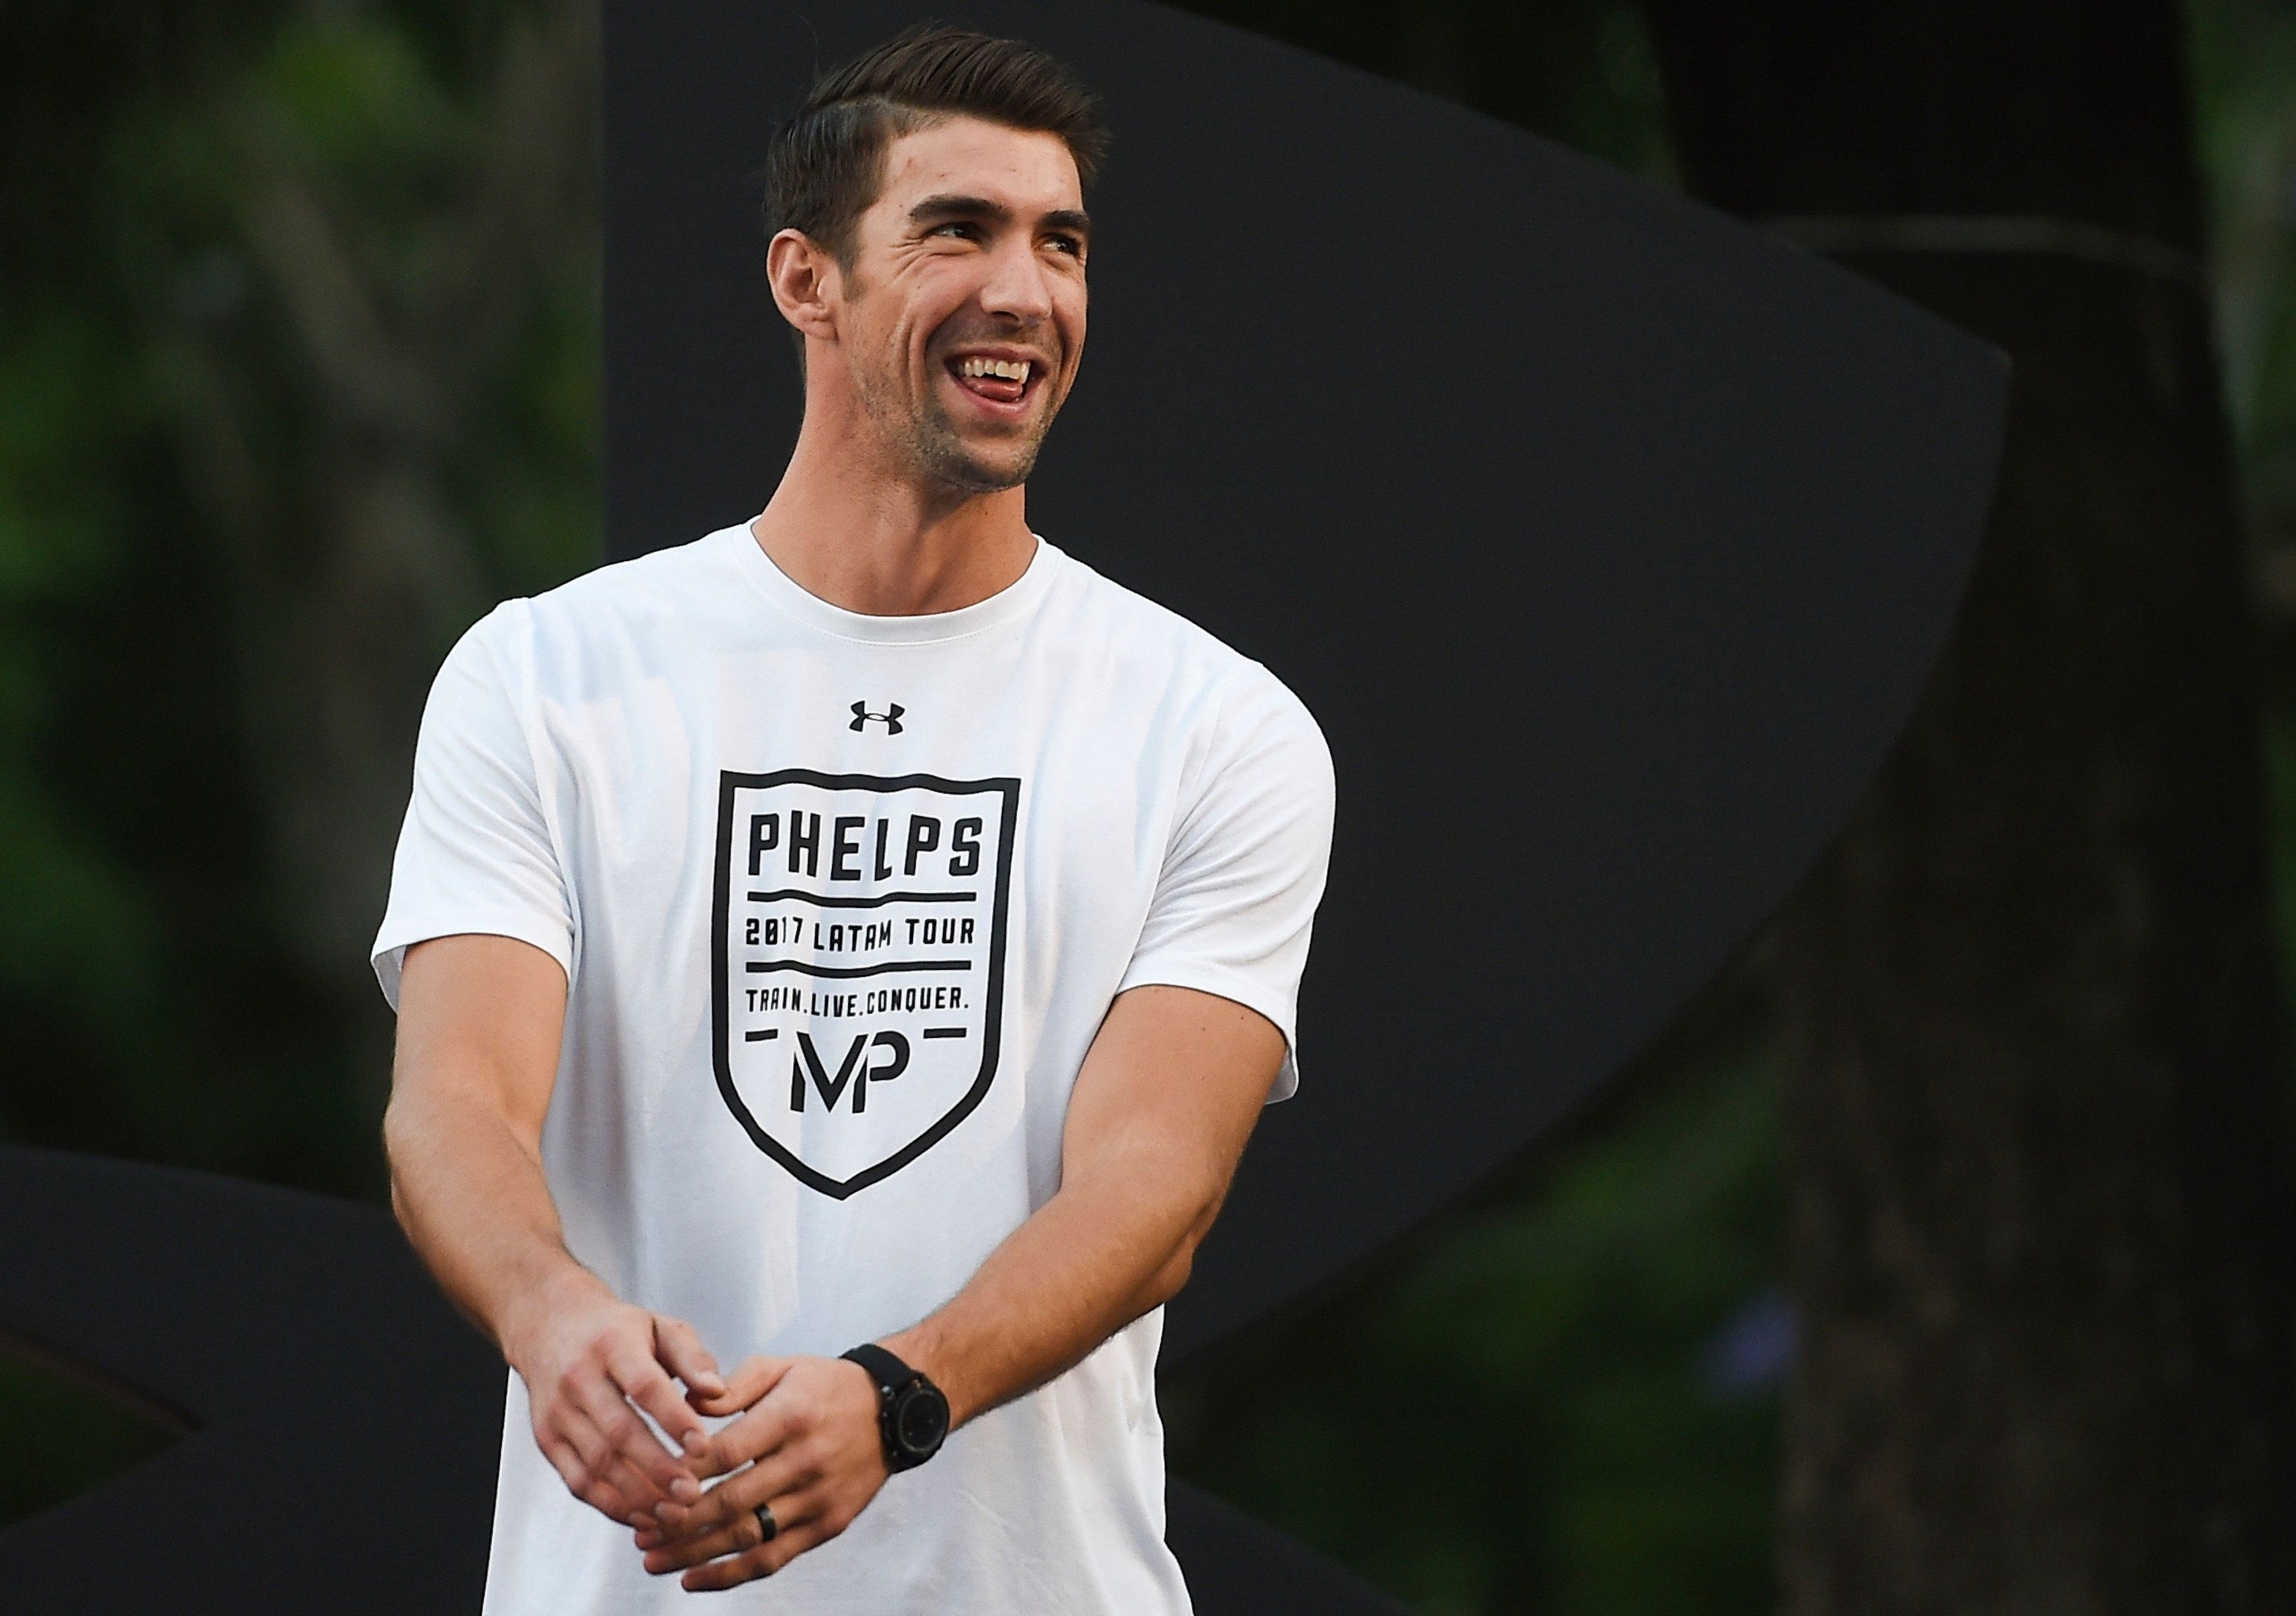 Michael Phelps opened up about living with depression and seeing a therapist in a new interview with CNN.